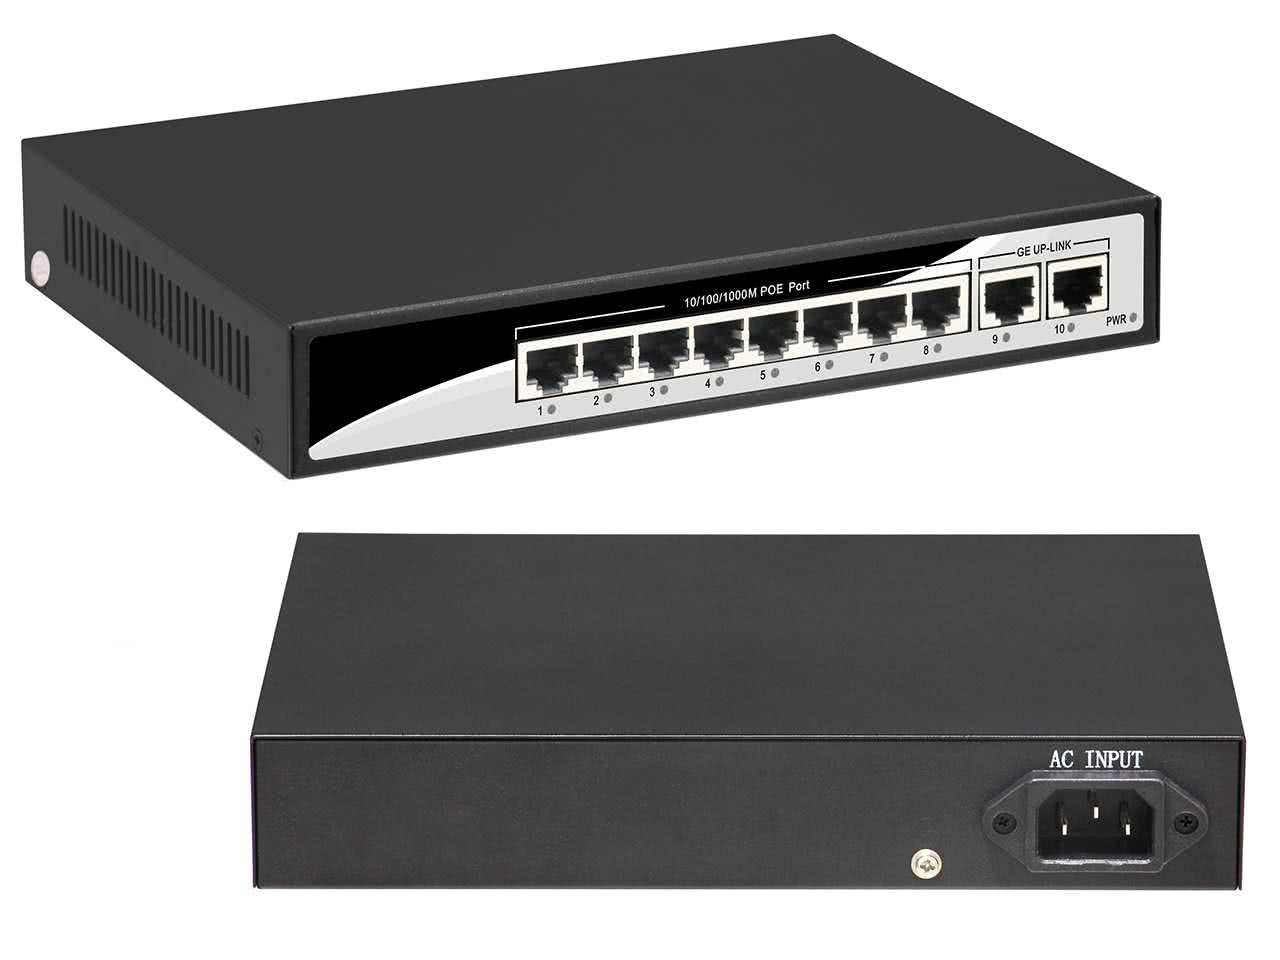 10 Port Power over Ethernet (POE) 1Gbps Gigabit Network Switch (8x POE, 2x Uplink) with Built-in 52V 2.88Amp PSU, 16W per Port Max, IEEE 802.3af/at